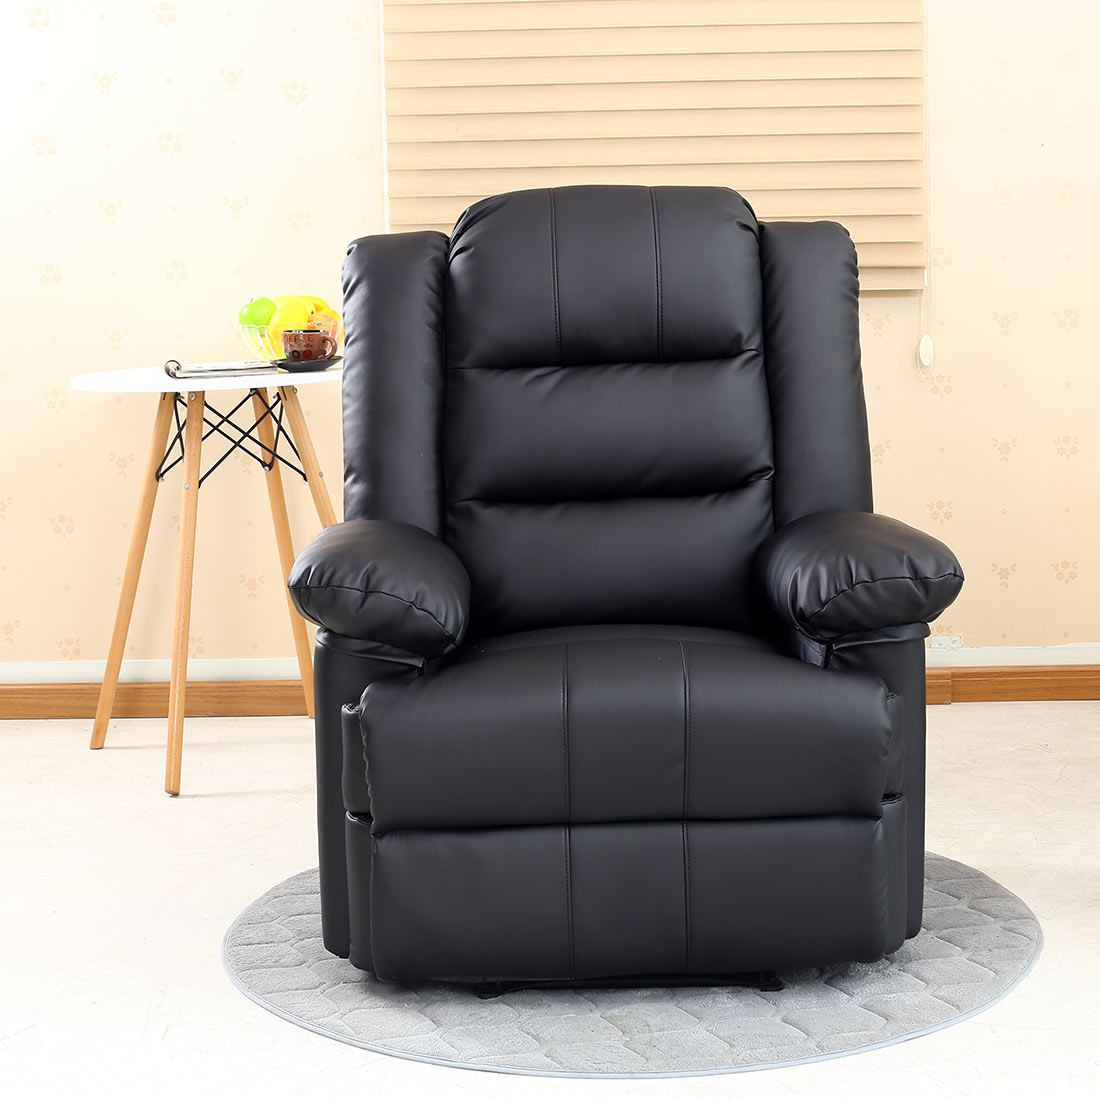 Loxley Leather Recliner Armchair Sofa Home Lounge Chair Pertaining To Sofa Lounge Chairs (View 9 of 15)